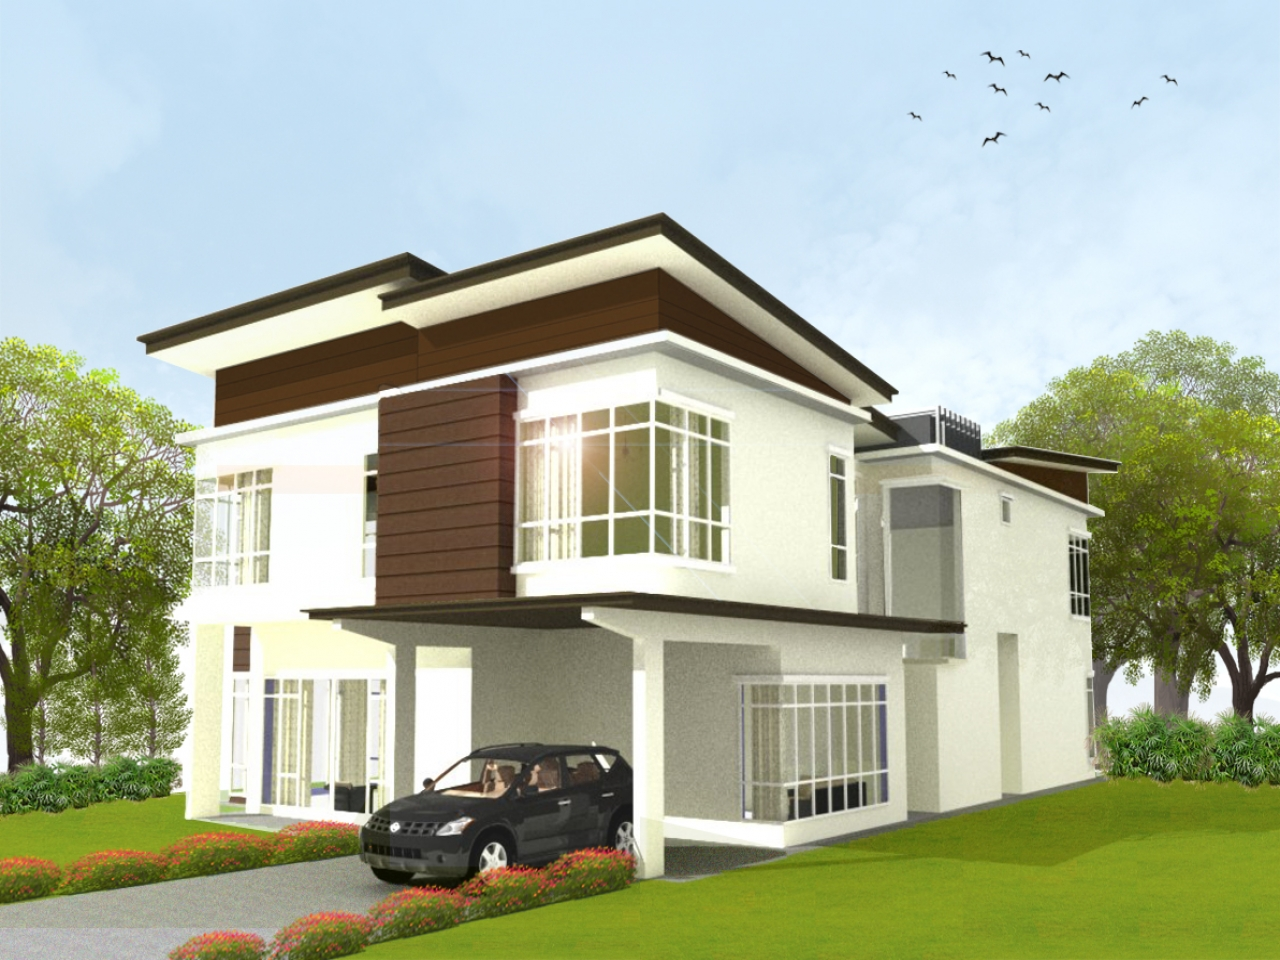 Bungalow House Designs Two Storey Bungalo 1 Design